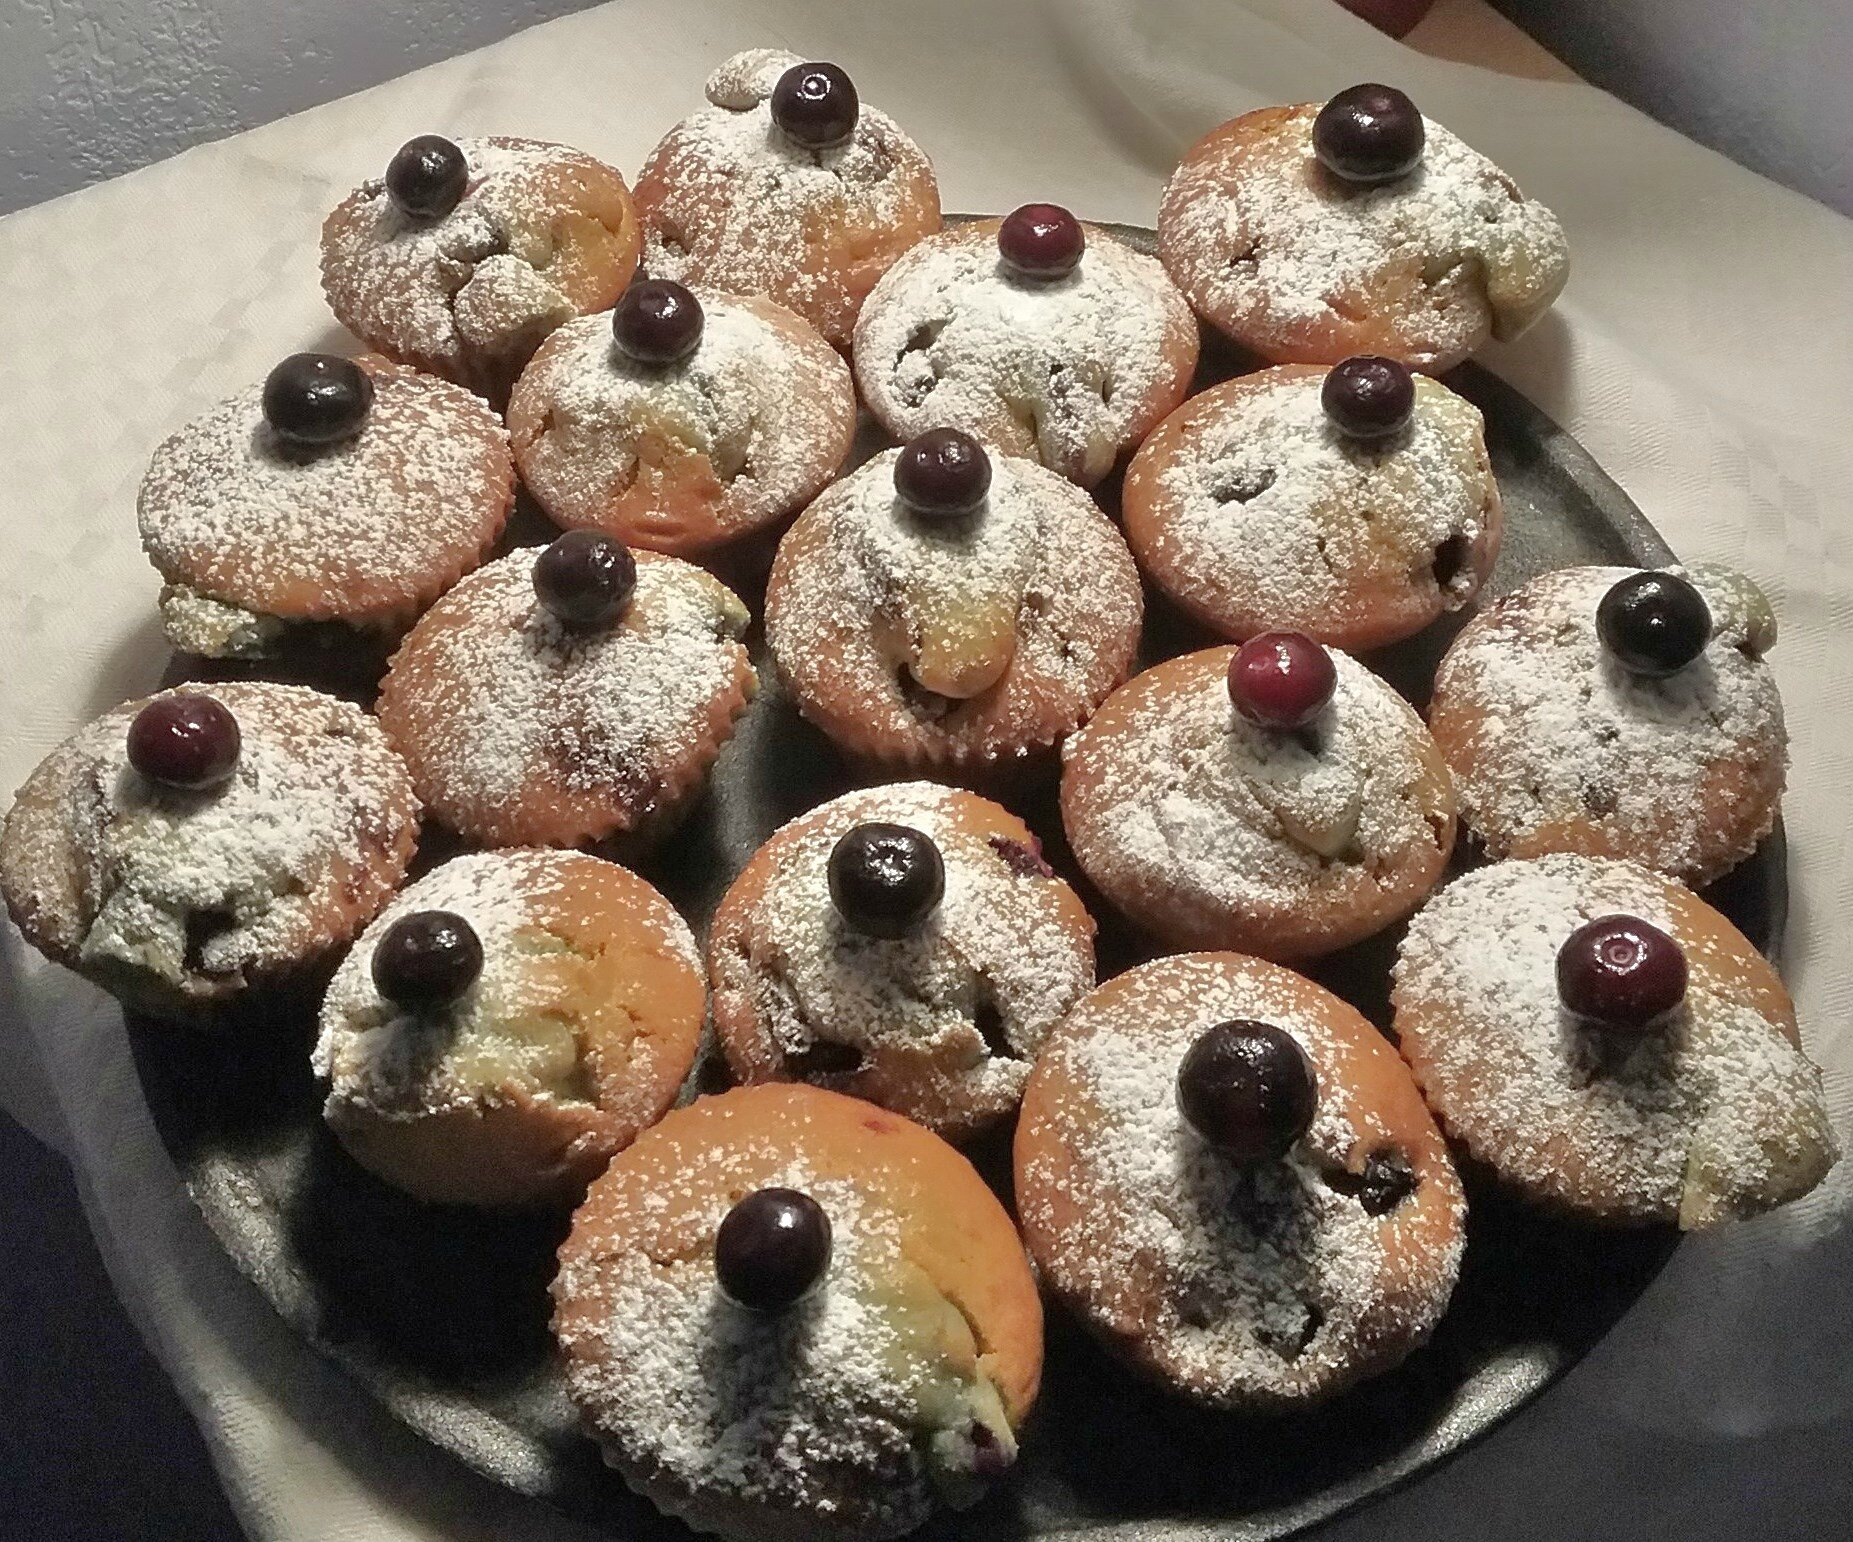 Muffins aux myrtilles - Blueberry muffins